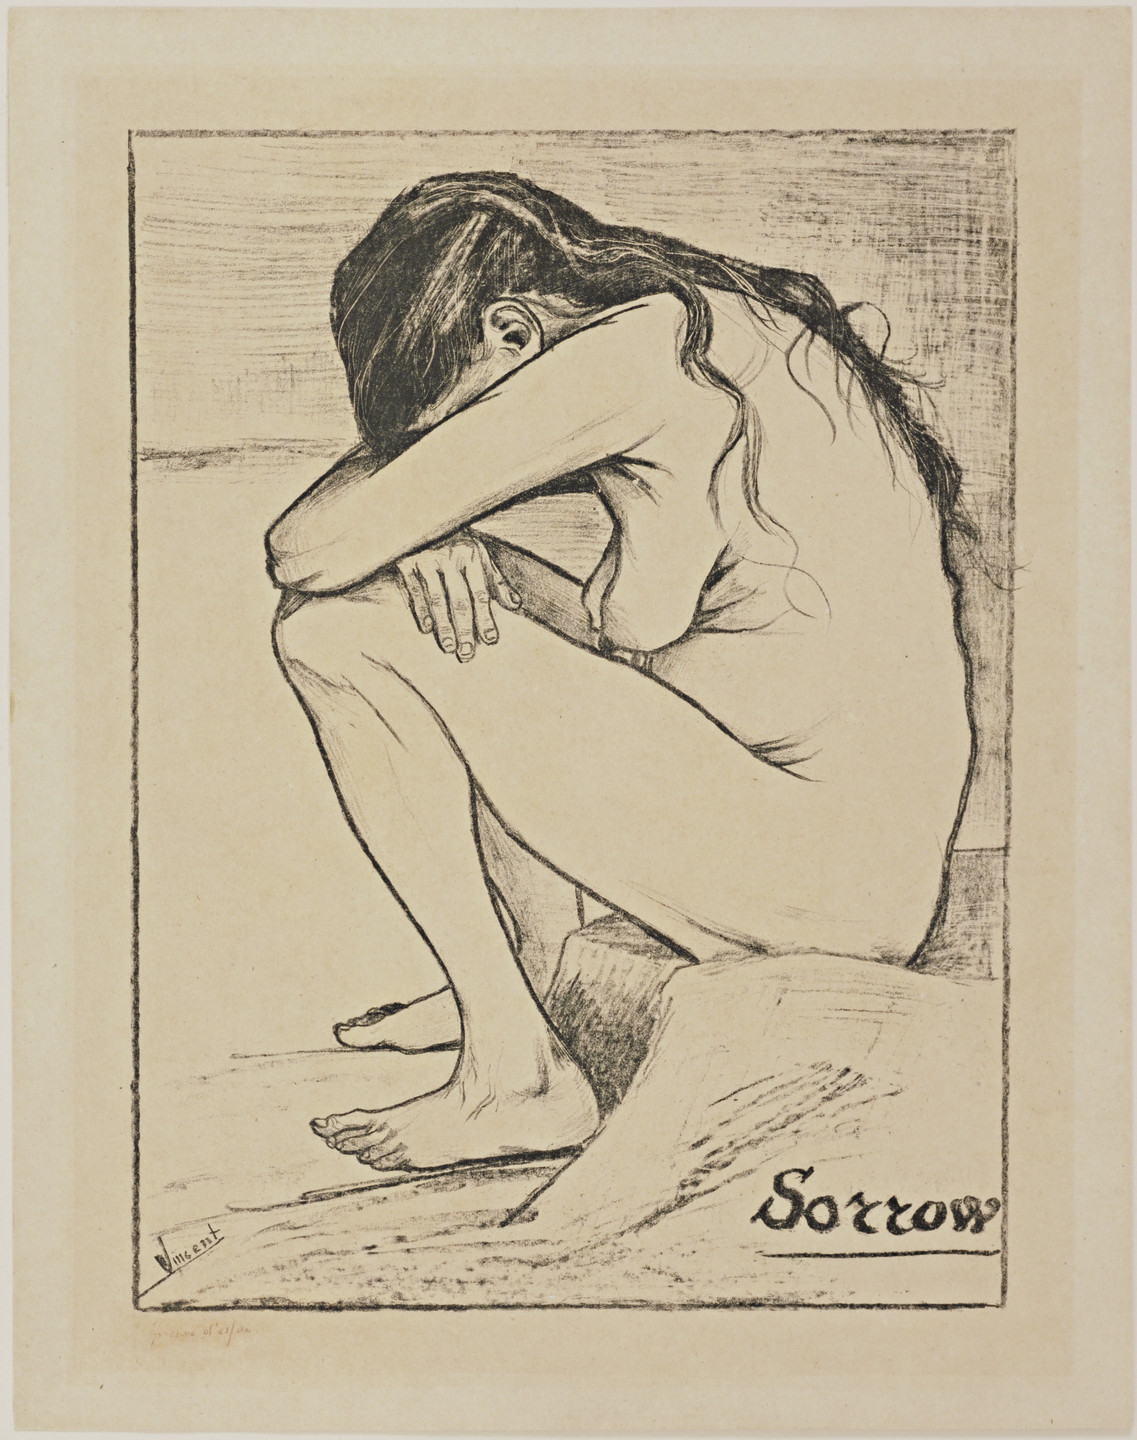 Vincent van Gogh. Sorrow. November 1882